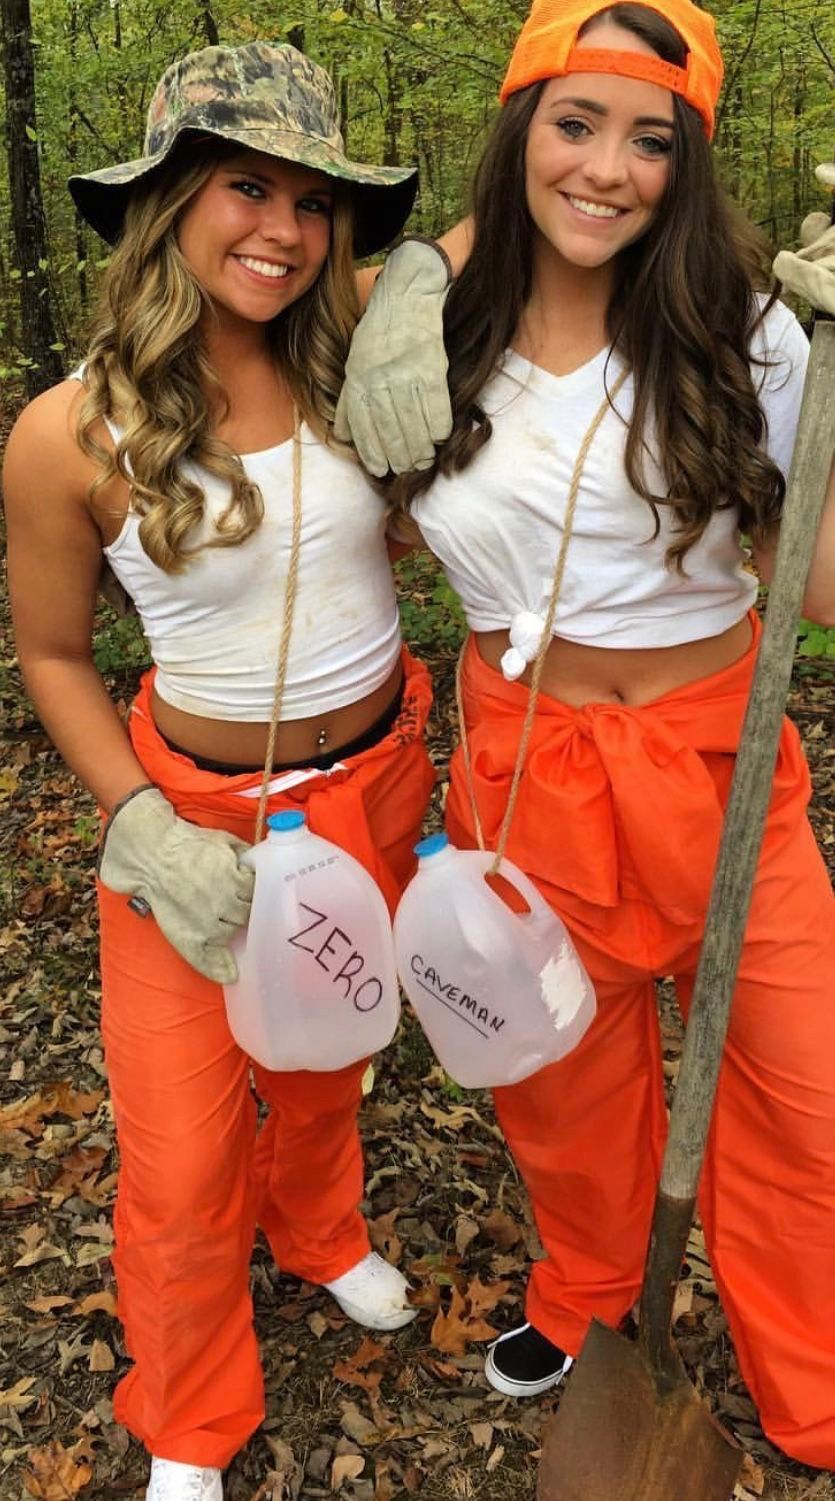 Cute Best Friend Halloween Costumes Ideas.Pin By Anna Mccormack On H O L I D A Y S E V E N T S In